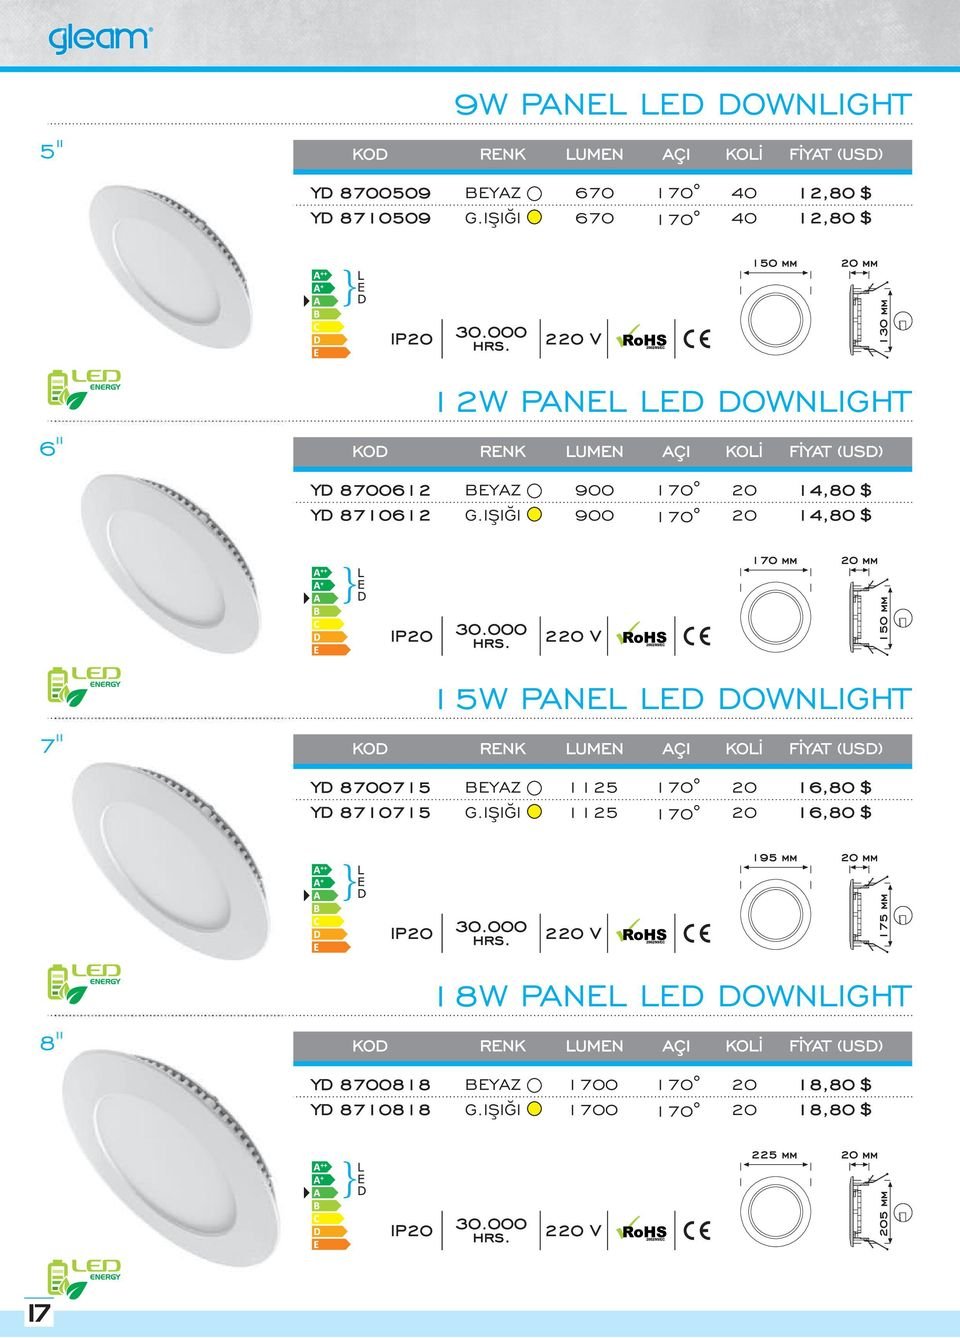 7'' 15W PANEL LED DOWNLIGHT YD 8700715 YD 87715 11 11 170 170 16,80 16,80 195 mm mm 175 mm